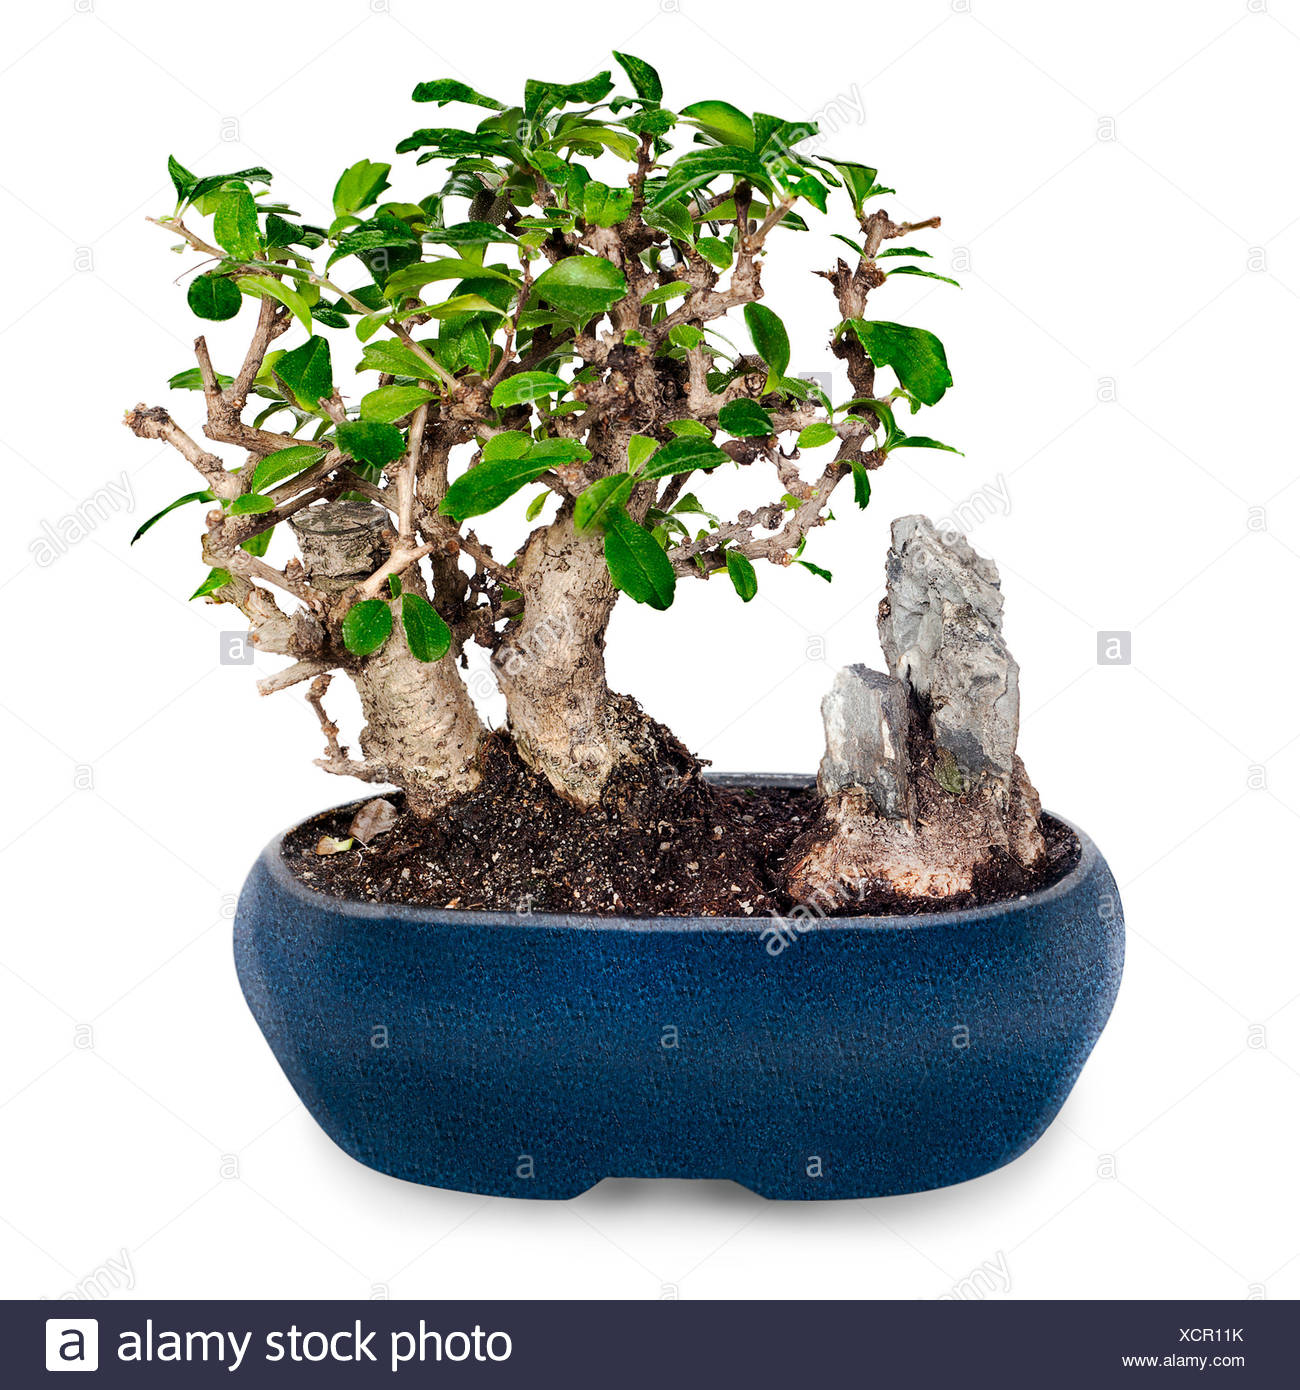 Miniature Bonsai Tree And Stone In Blue Pot Isolated On White